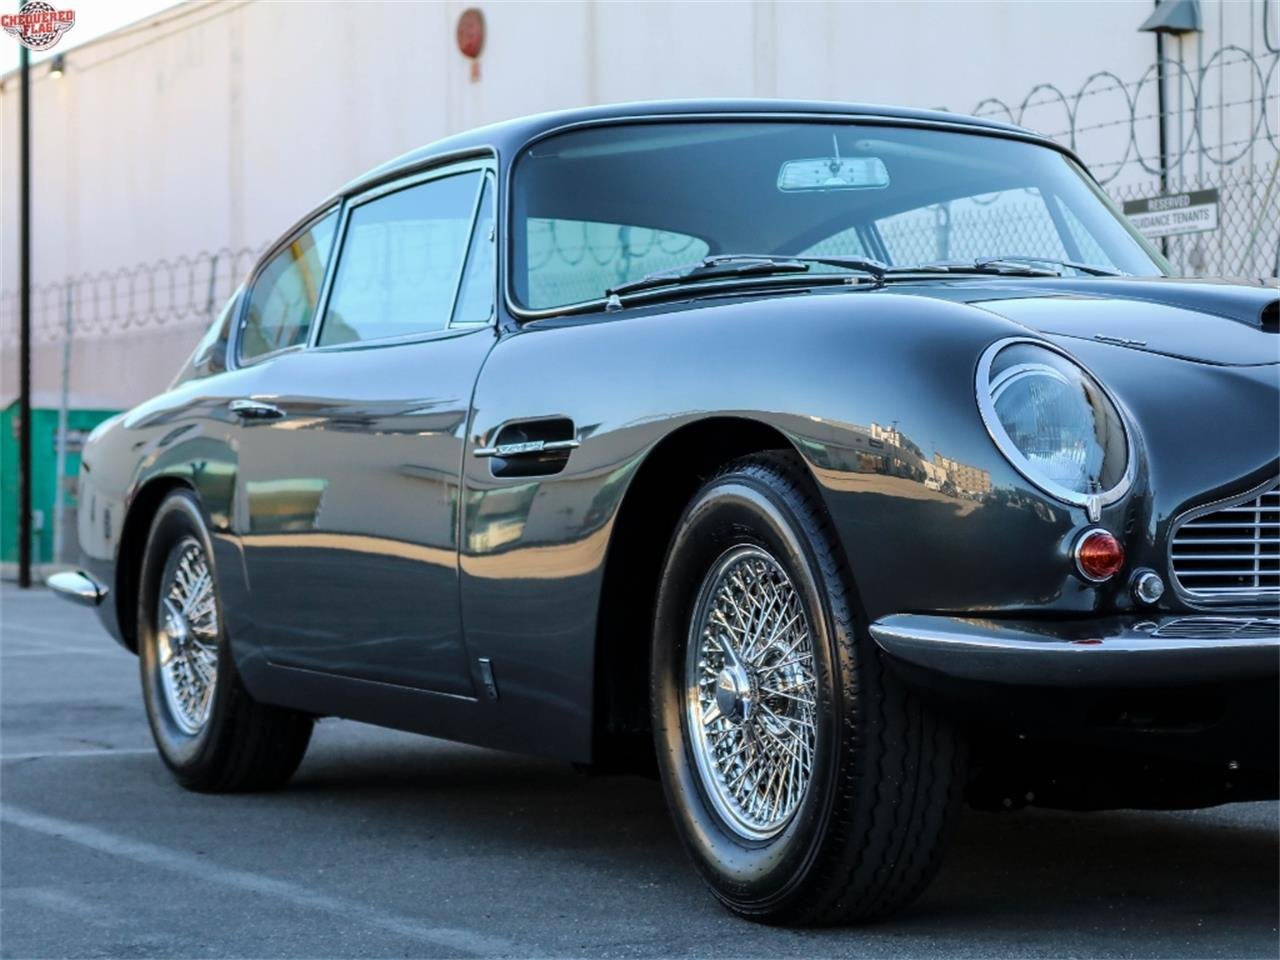 Large Picture of 1967 Aston Martin DB6 located in California Offered by Chequered Flag International - MAMK